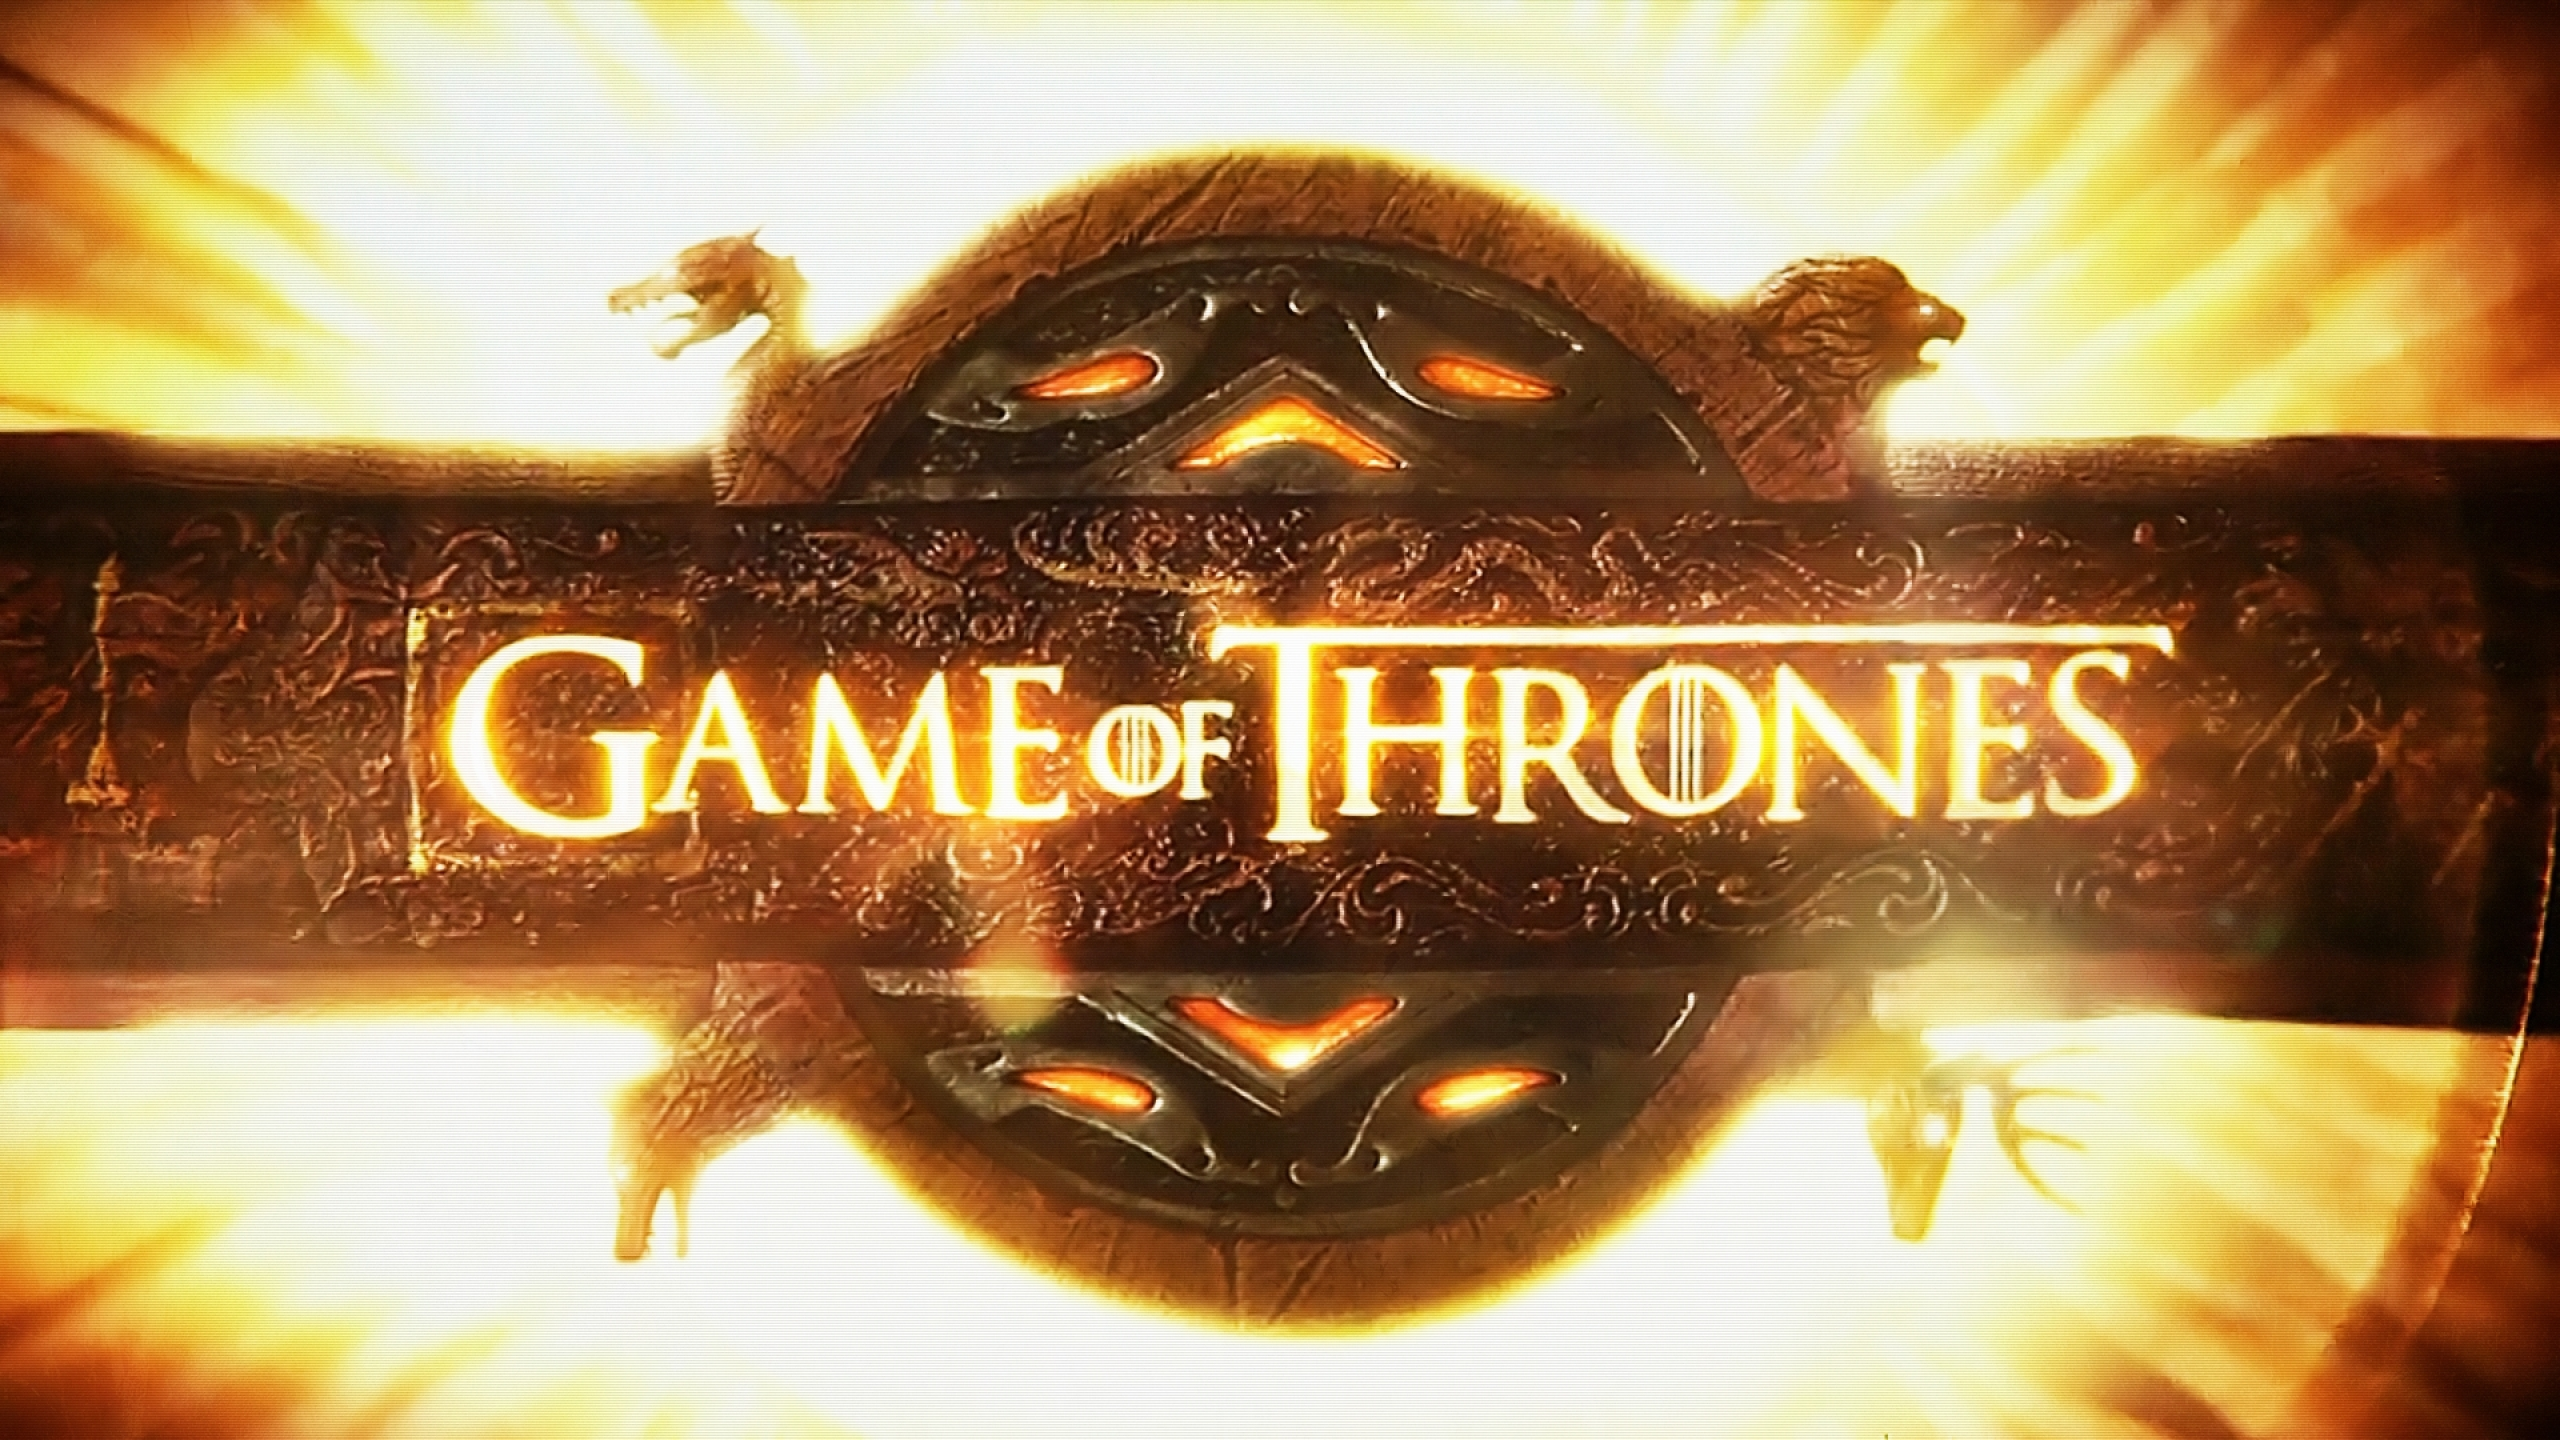 Roundtable: Book Fans, Show Fans, Race, and Rape in Game of Thrones